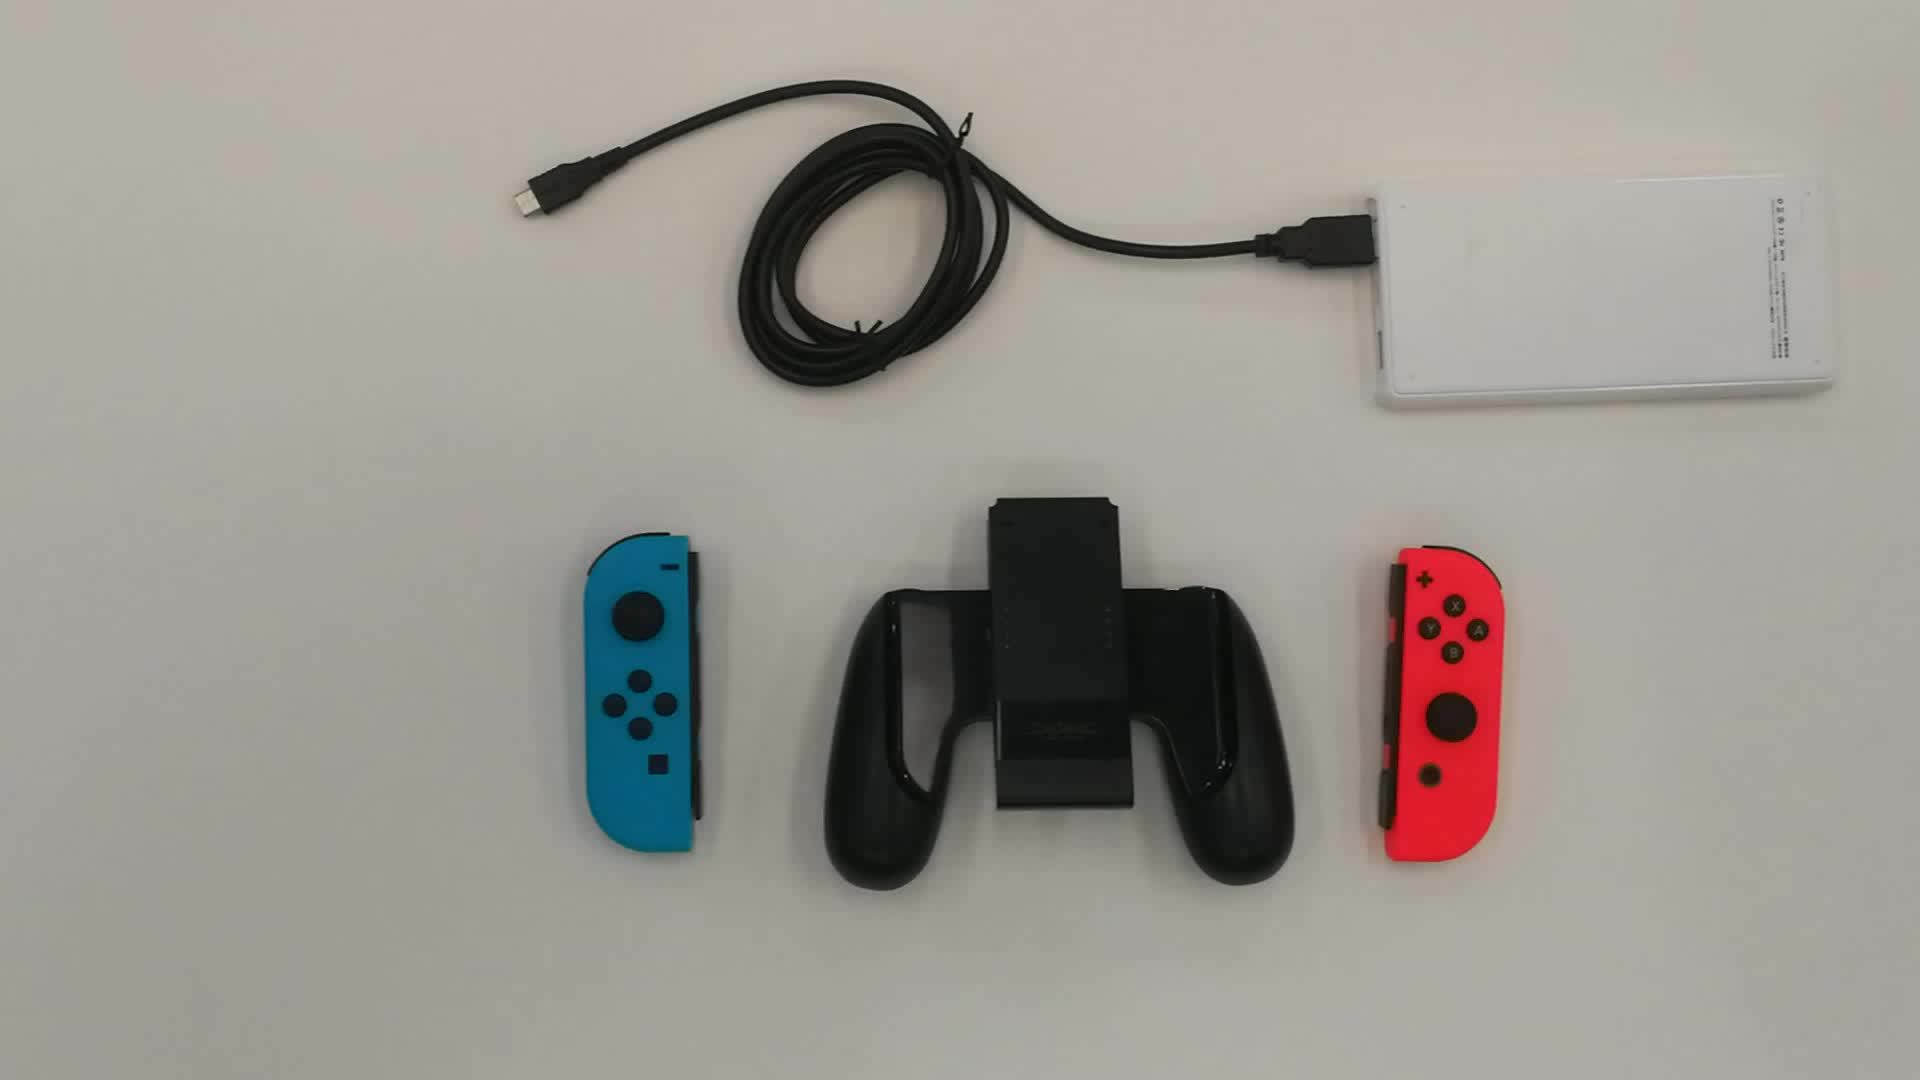 Harga Jual Switch Charging Grip Terbaru 2018 Emping Jagung By Dapur Buamp039e Sf Handle Controller Charger For Nintendo Joy Con Original Dobe Brand Game Accessories